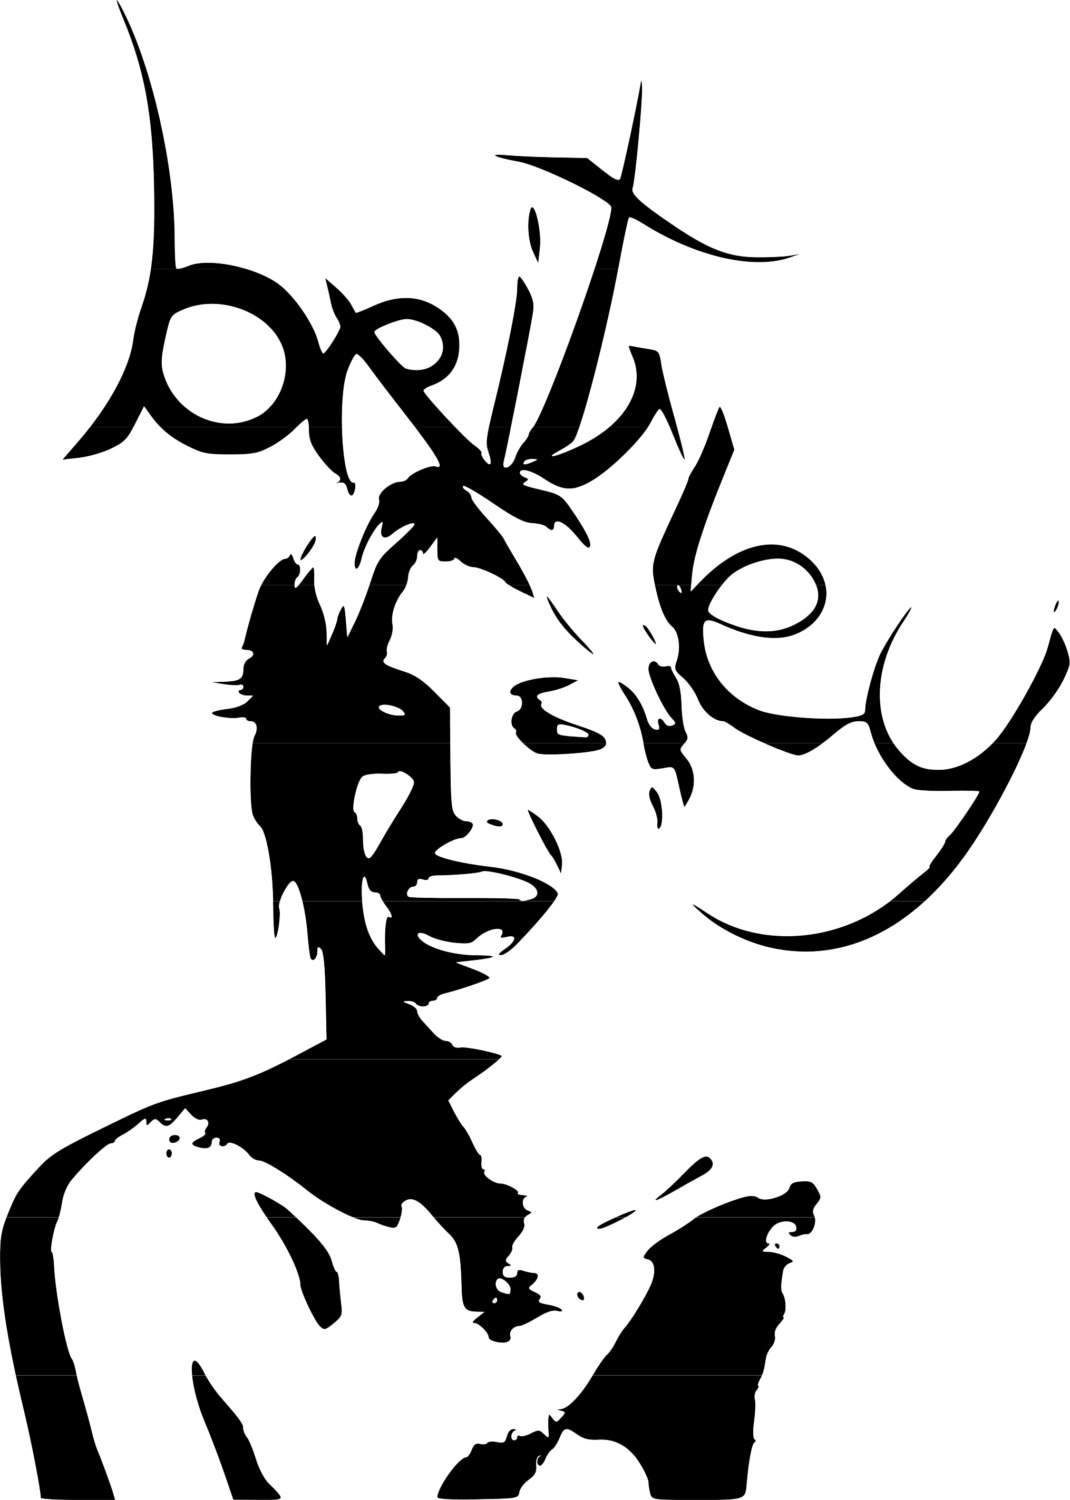 Britney Spears - Pop Music - Vinyl Decal - Baby One More Time -  GodGiveMeTruth by GGMTgodgivemetruth on Etsy